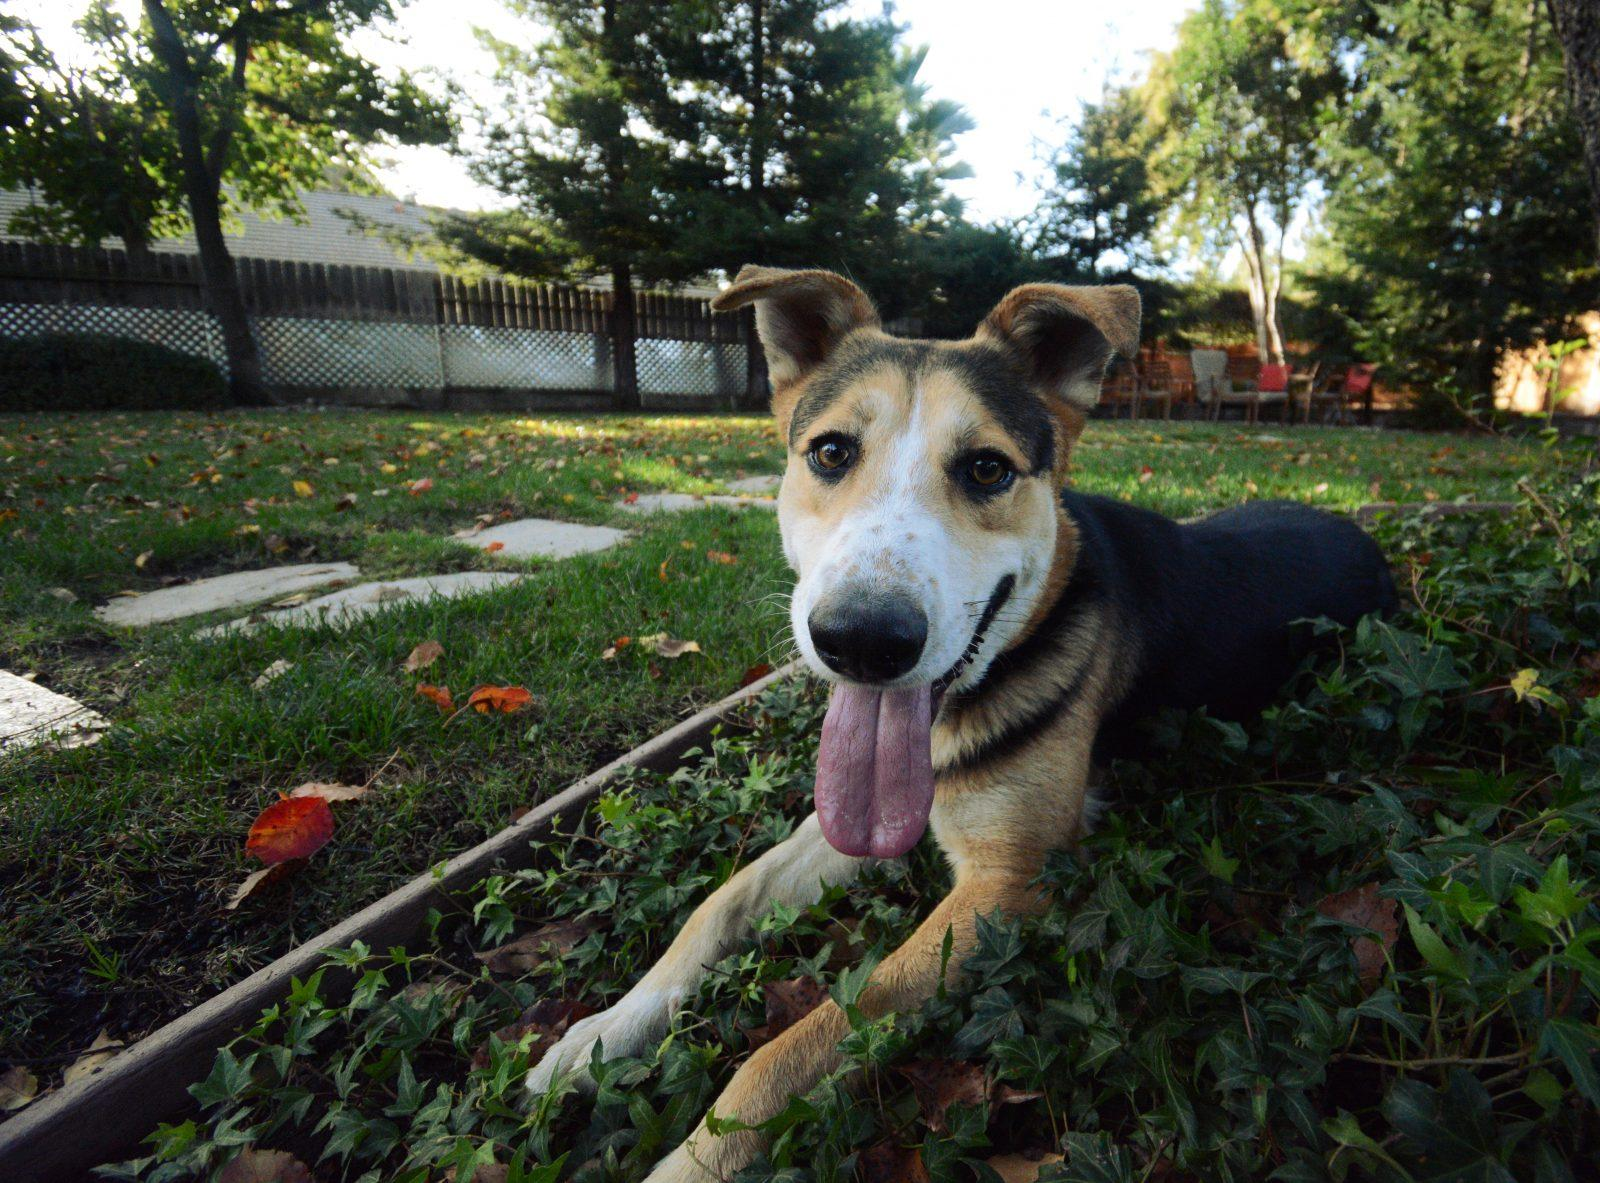 Keep track of your furry friend with Tractive